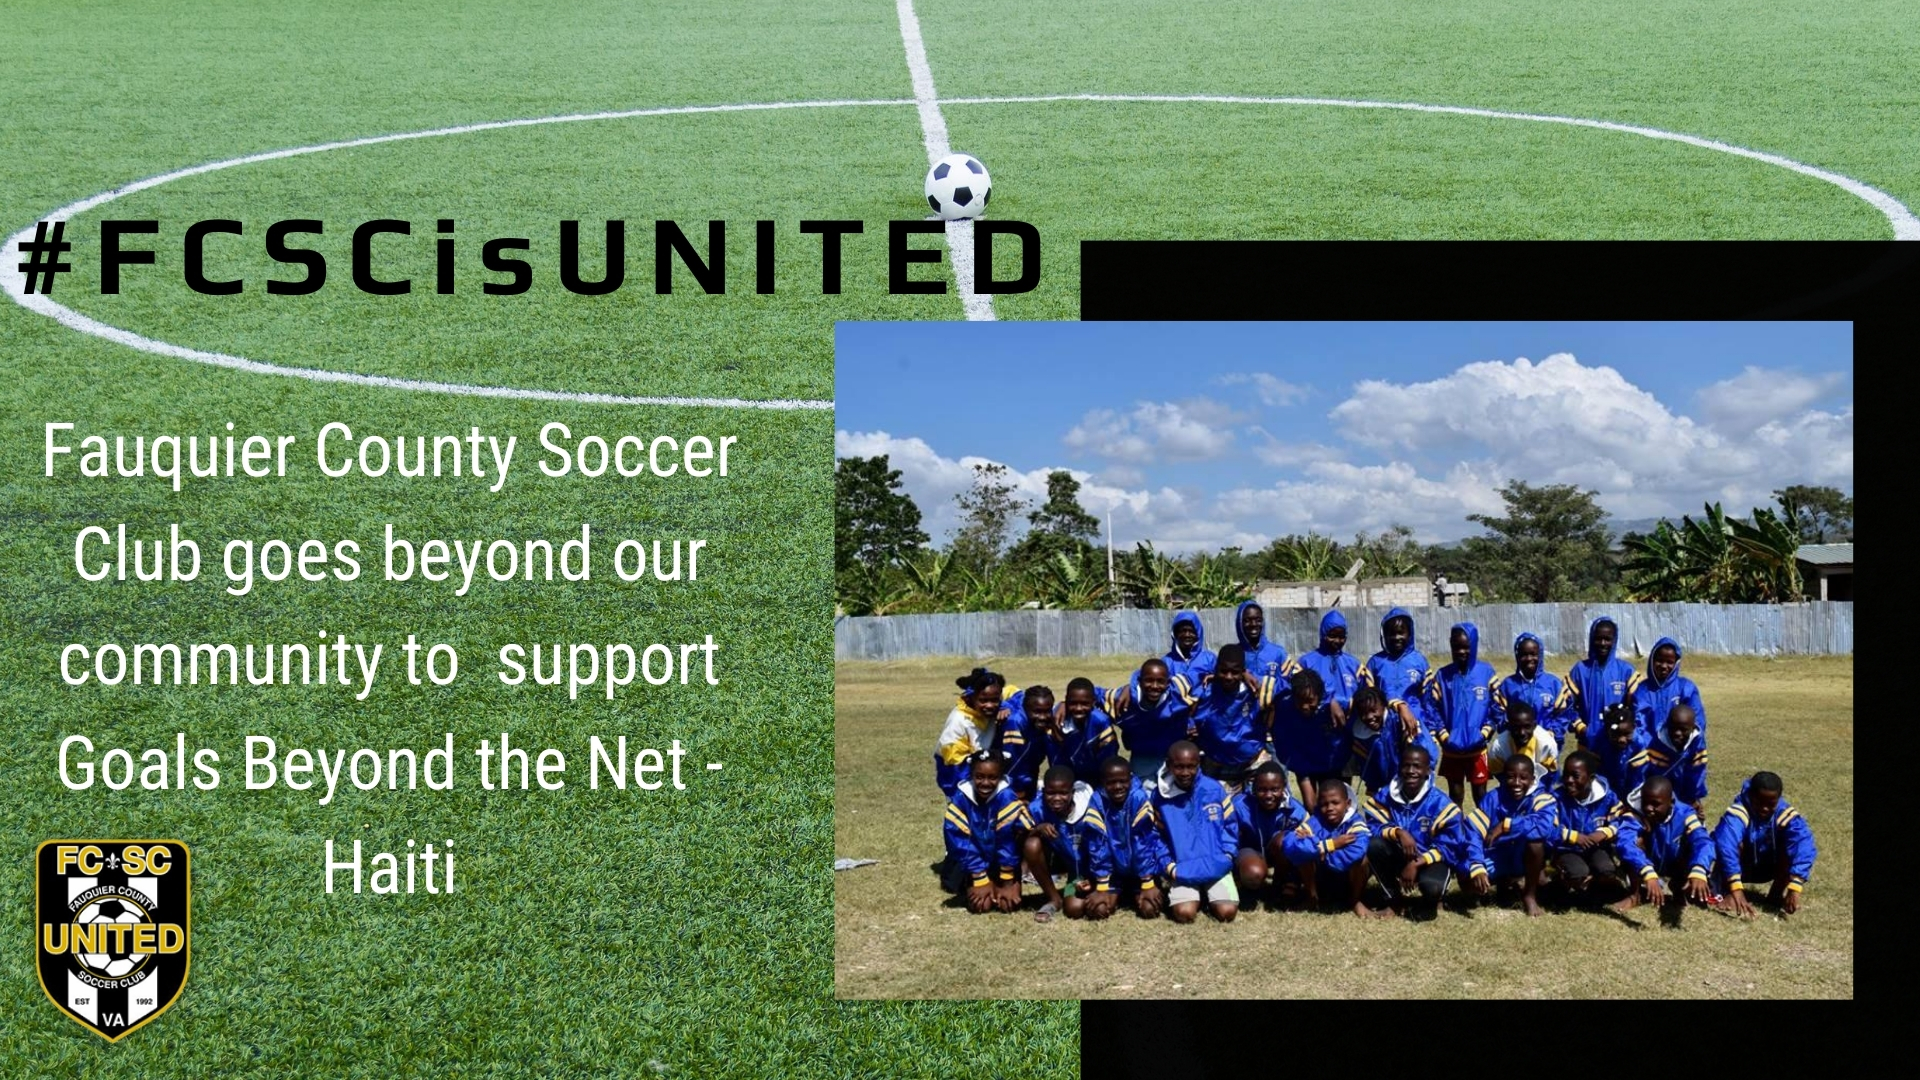 FCSC Supports Goals Beyond the Net - Haiti